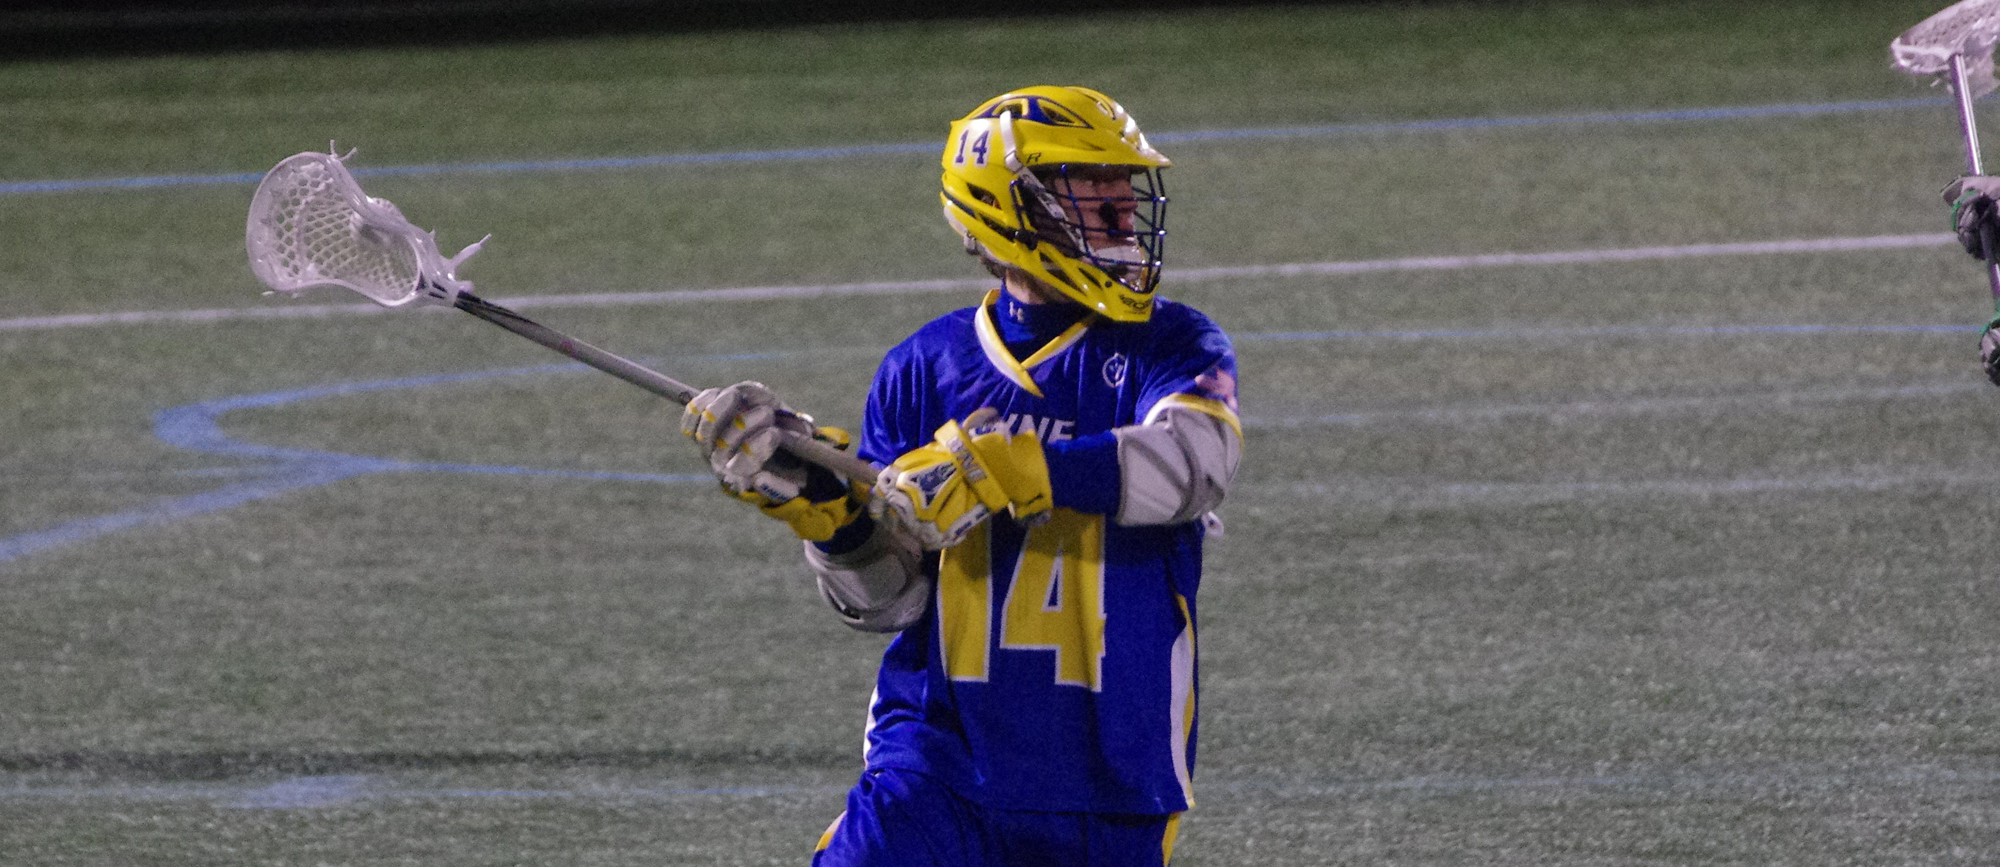 Western New England Holds Off UNE For 9-7 Victory